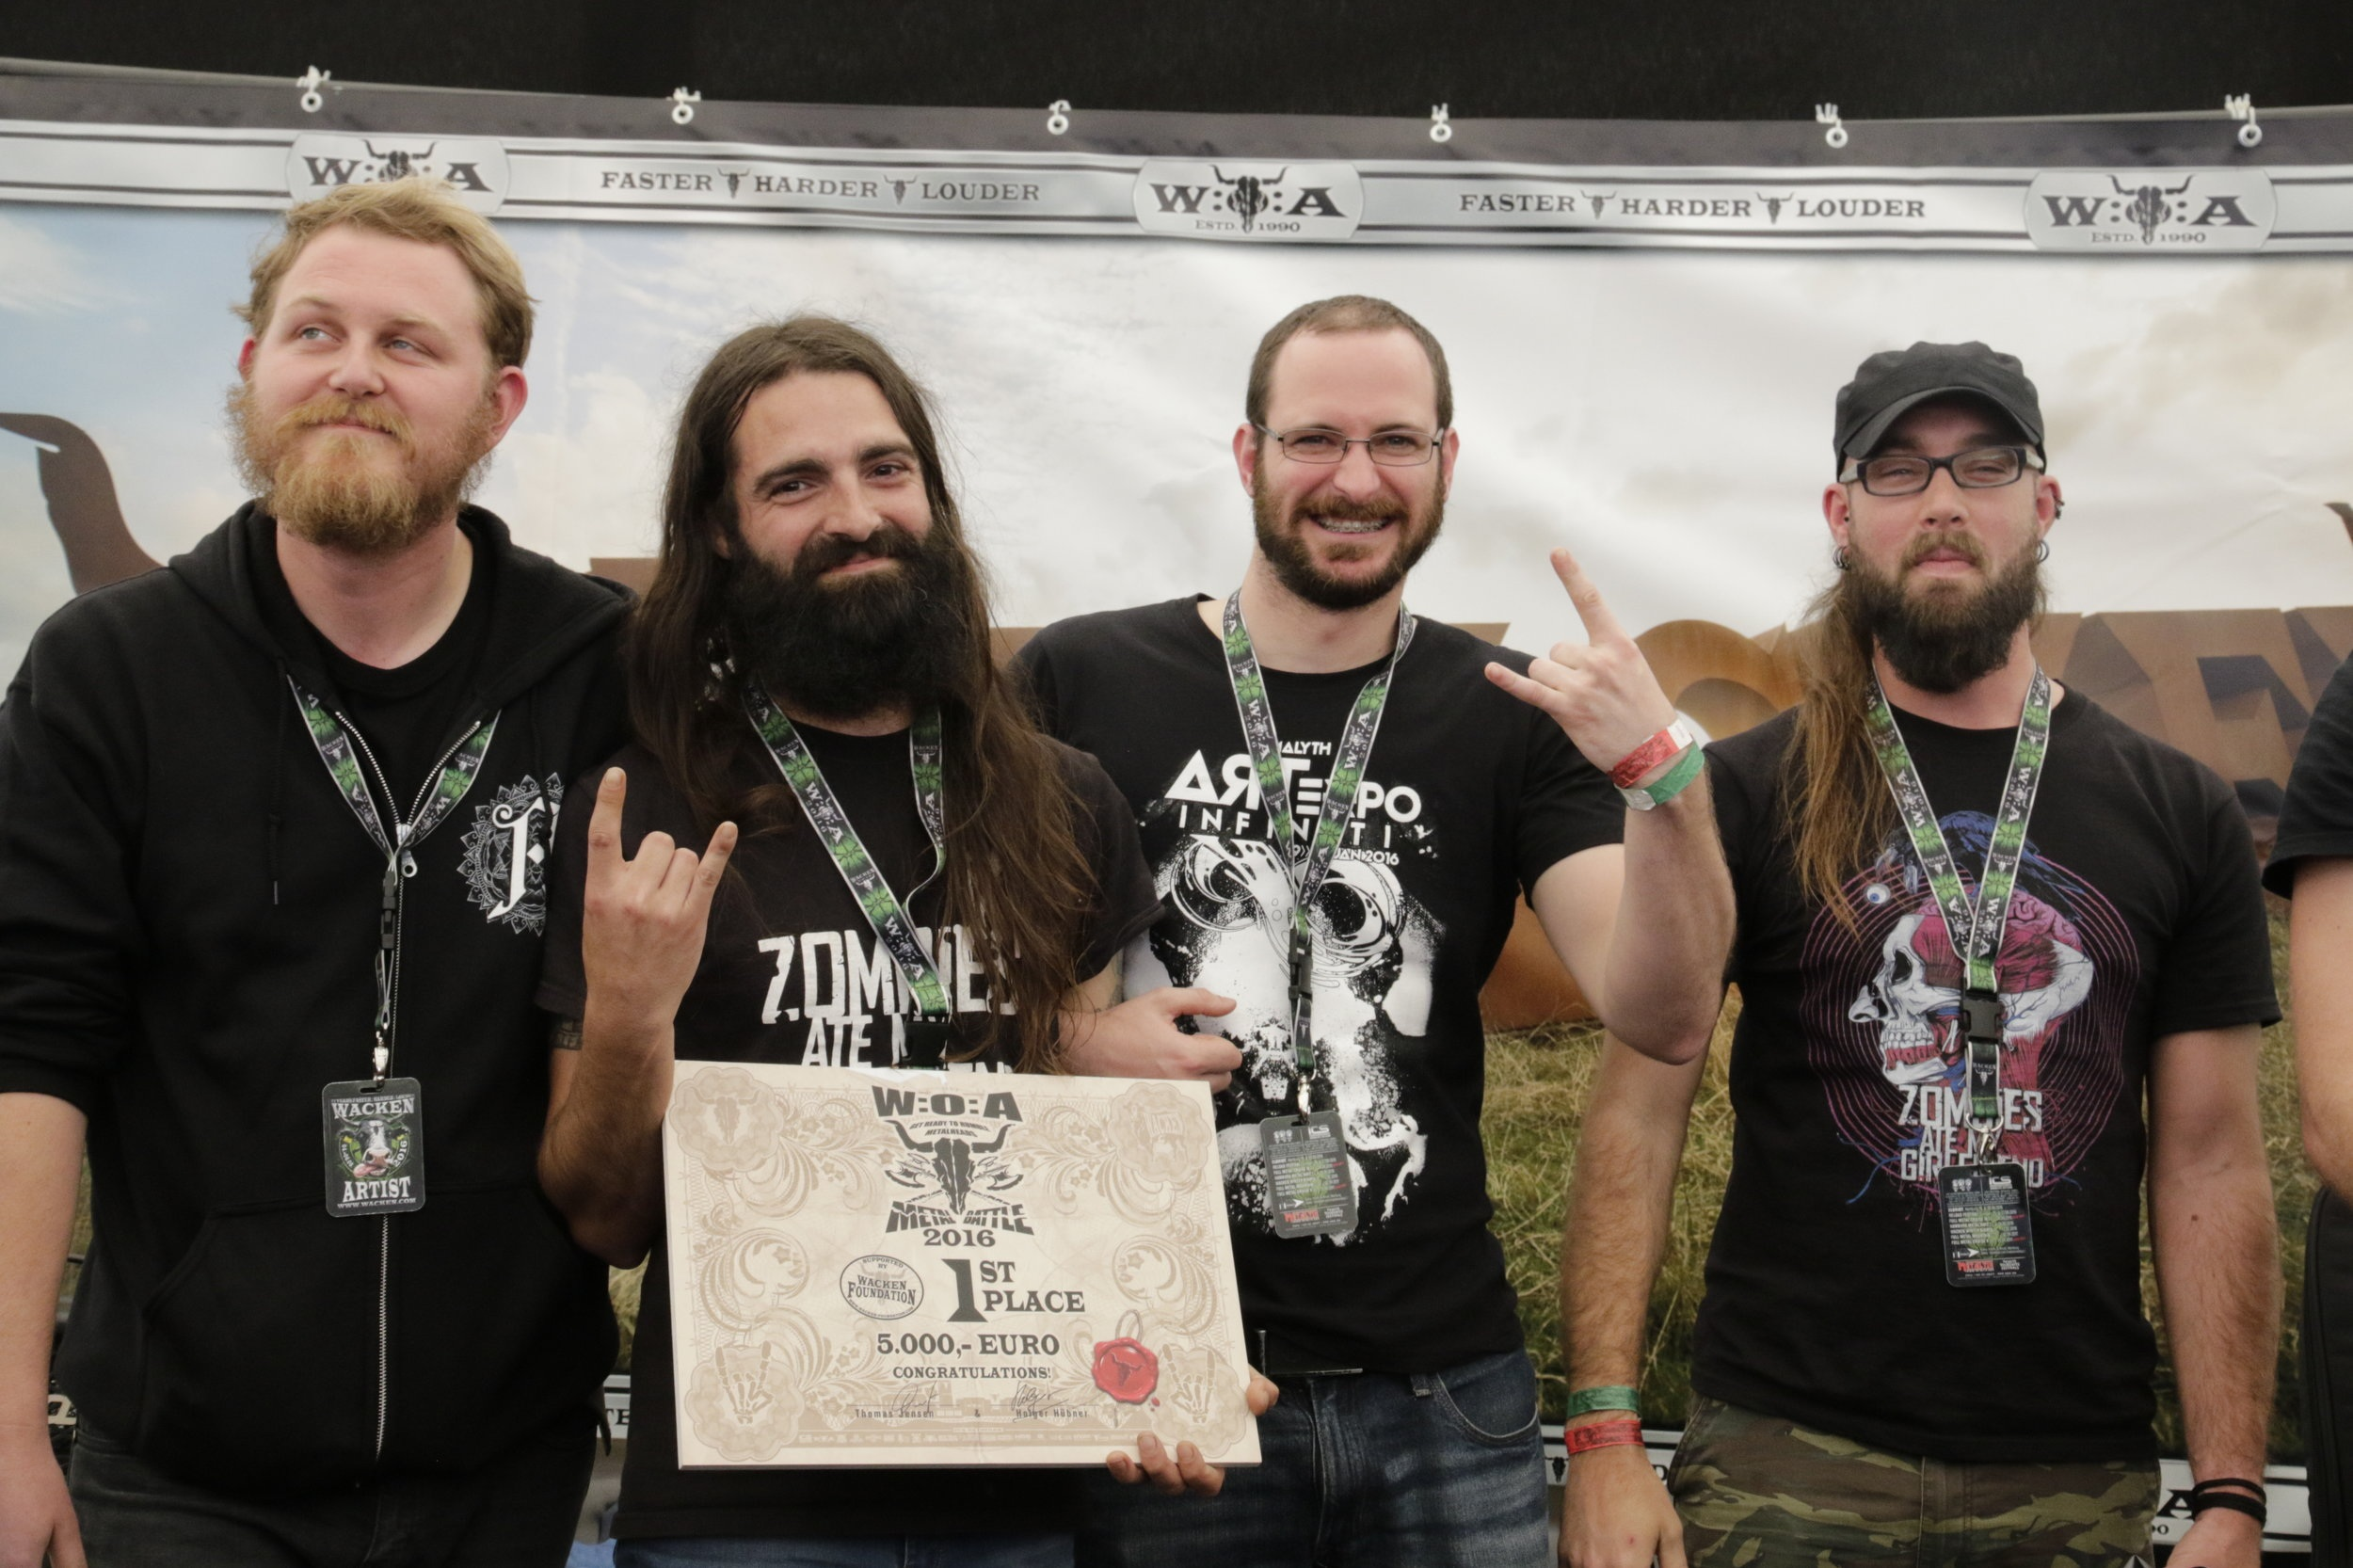 ZOMBIES ATE MY GIRLFRIEND - South African Wacken Metal Battle Winners